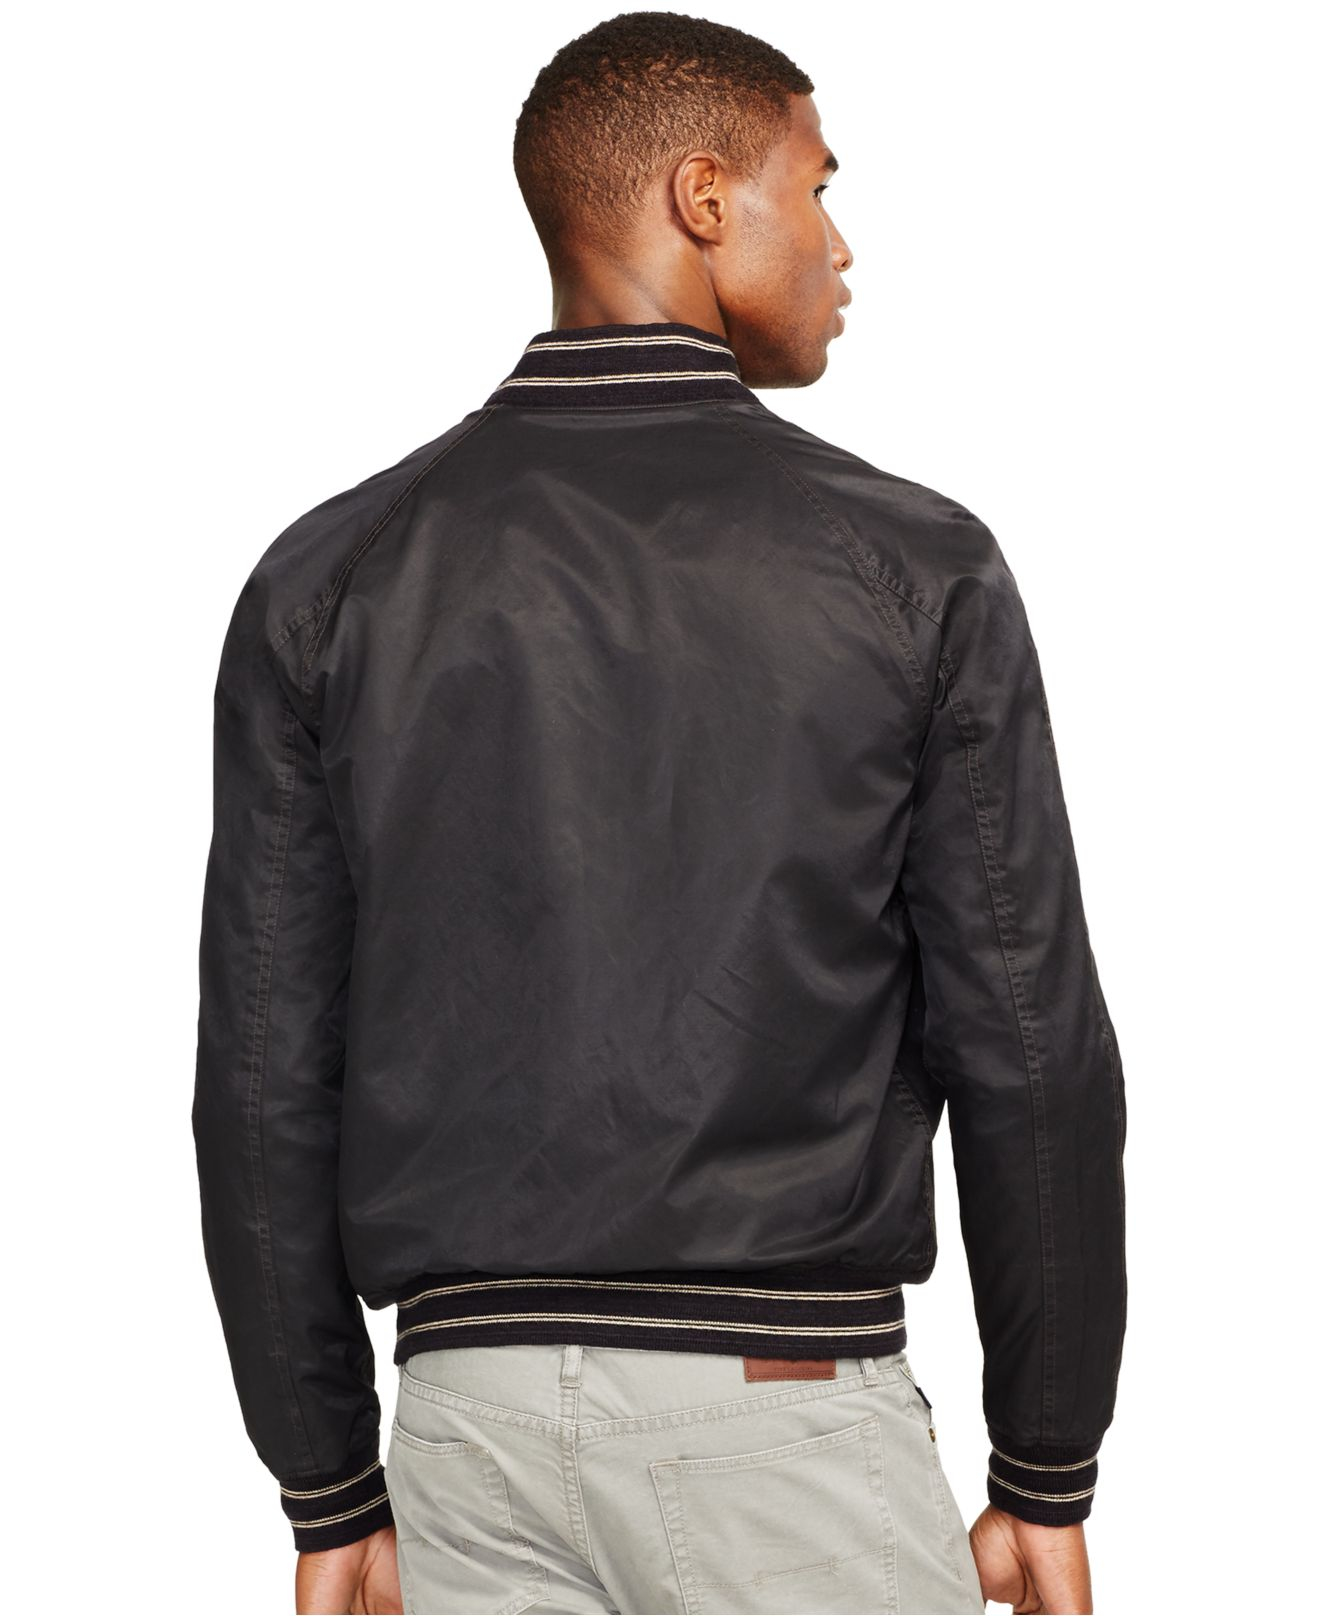 Find great deals on eBay for polo varsity jackets. Shop with confidence.